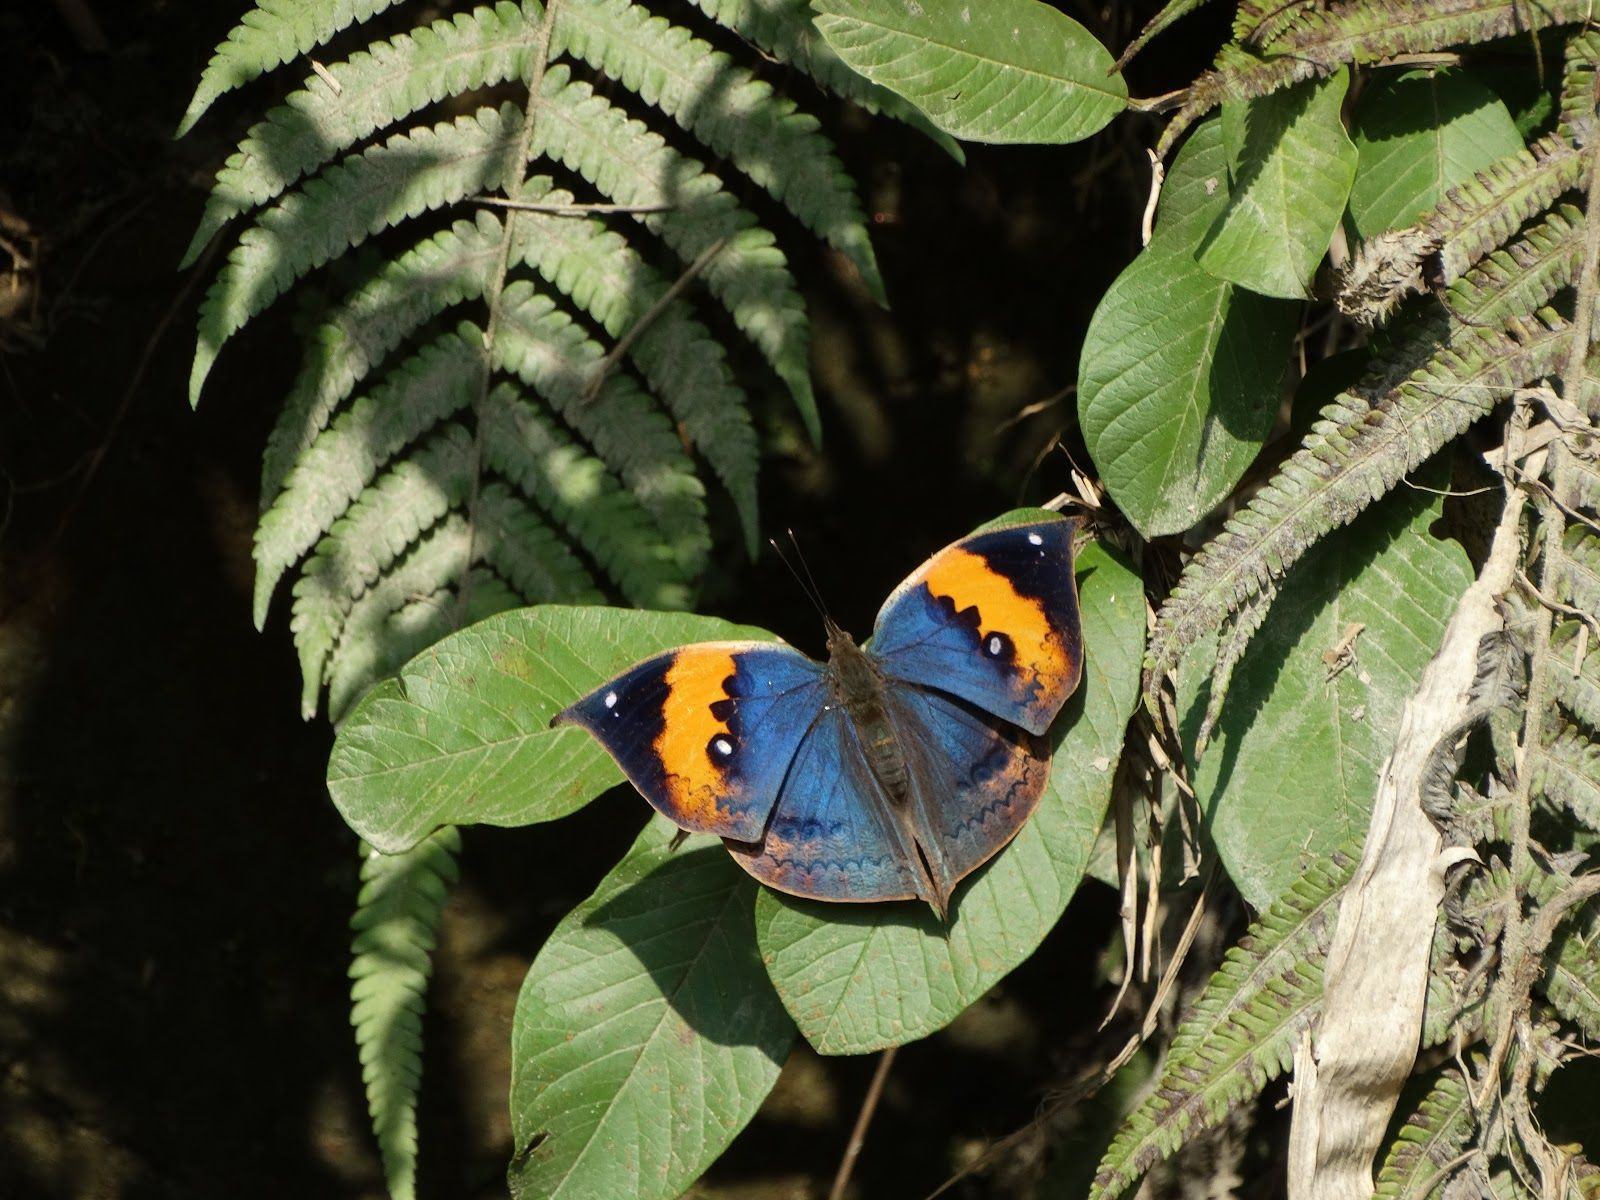 The Dead Leaf Butterfly